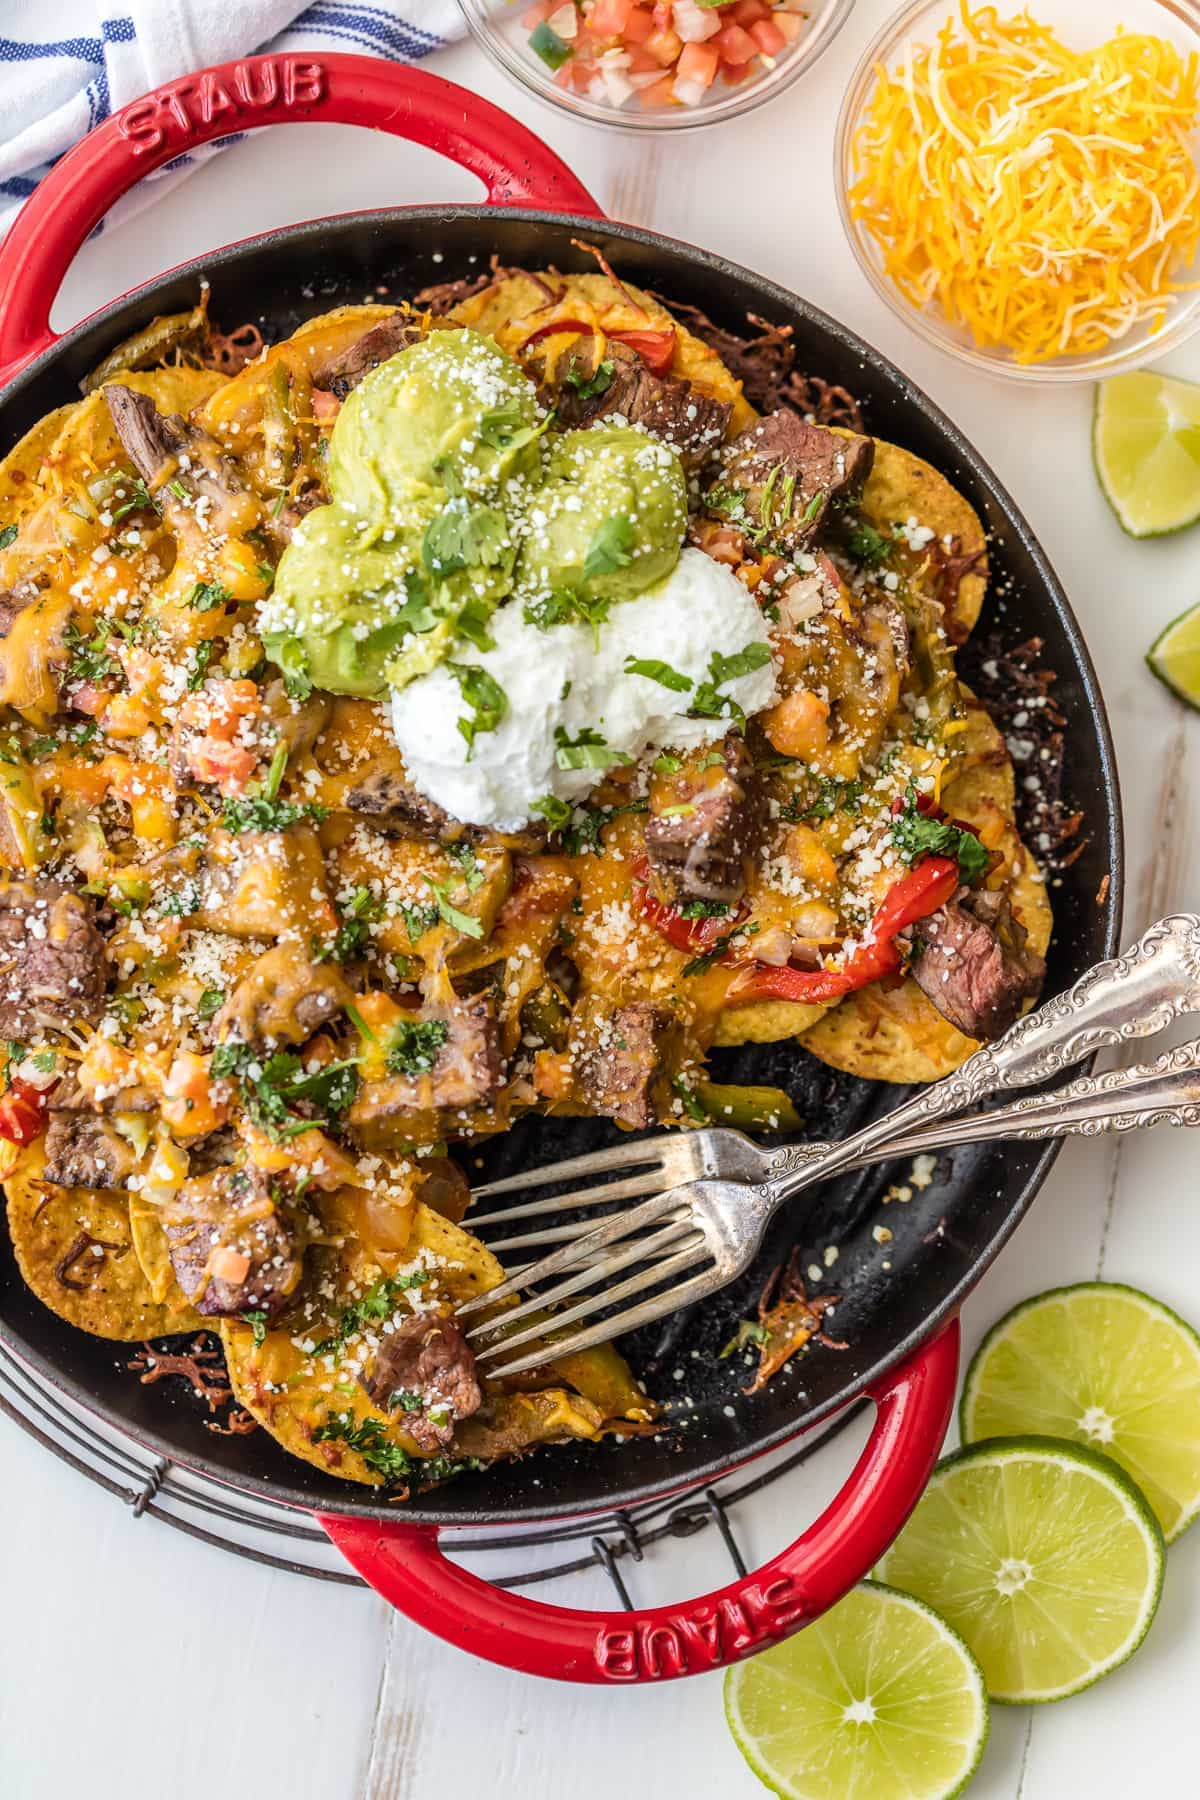 Steak Fajita Nachos in a skillet with two forks